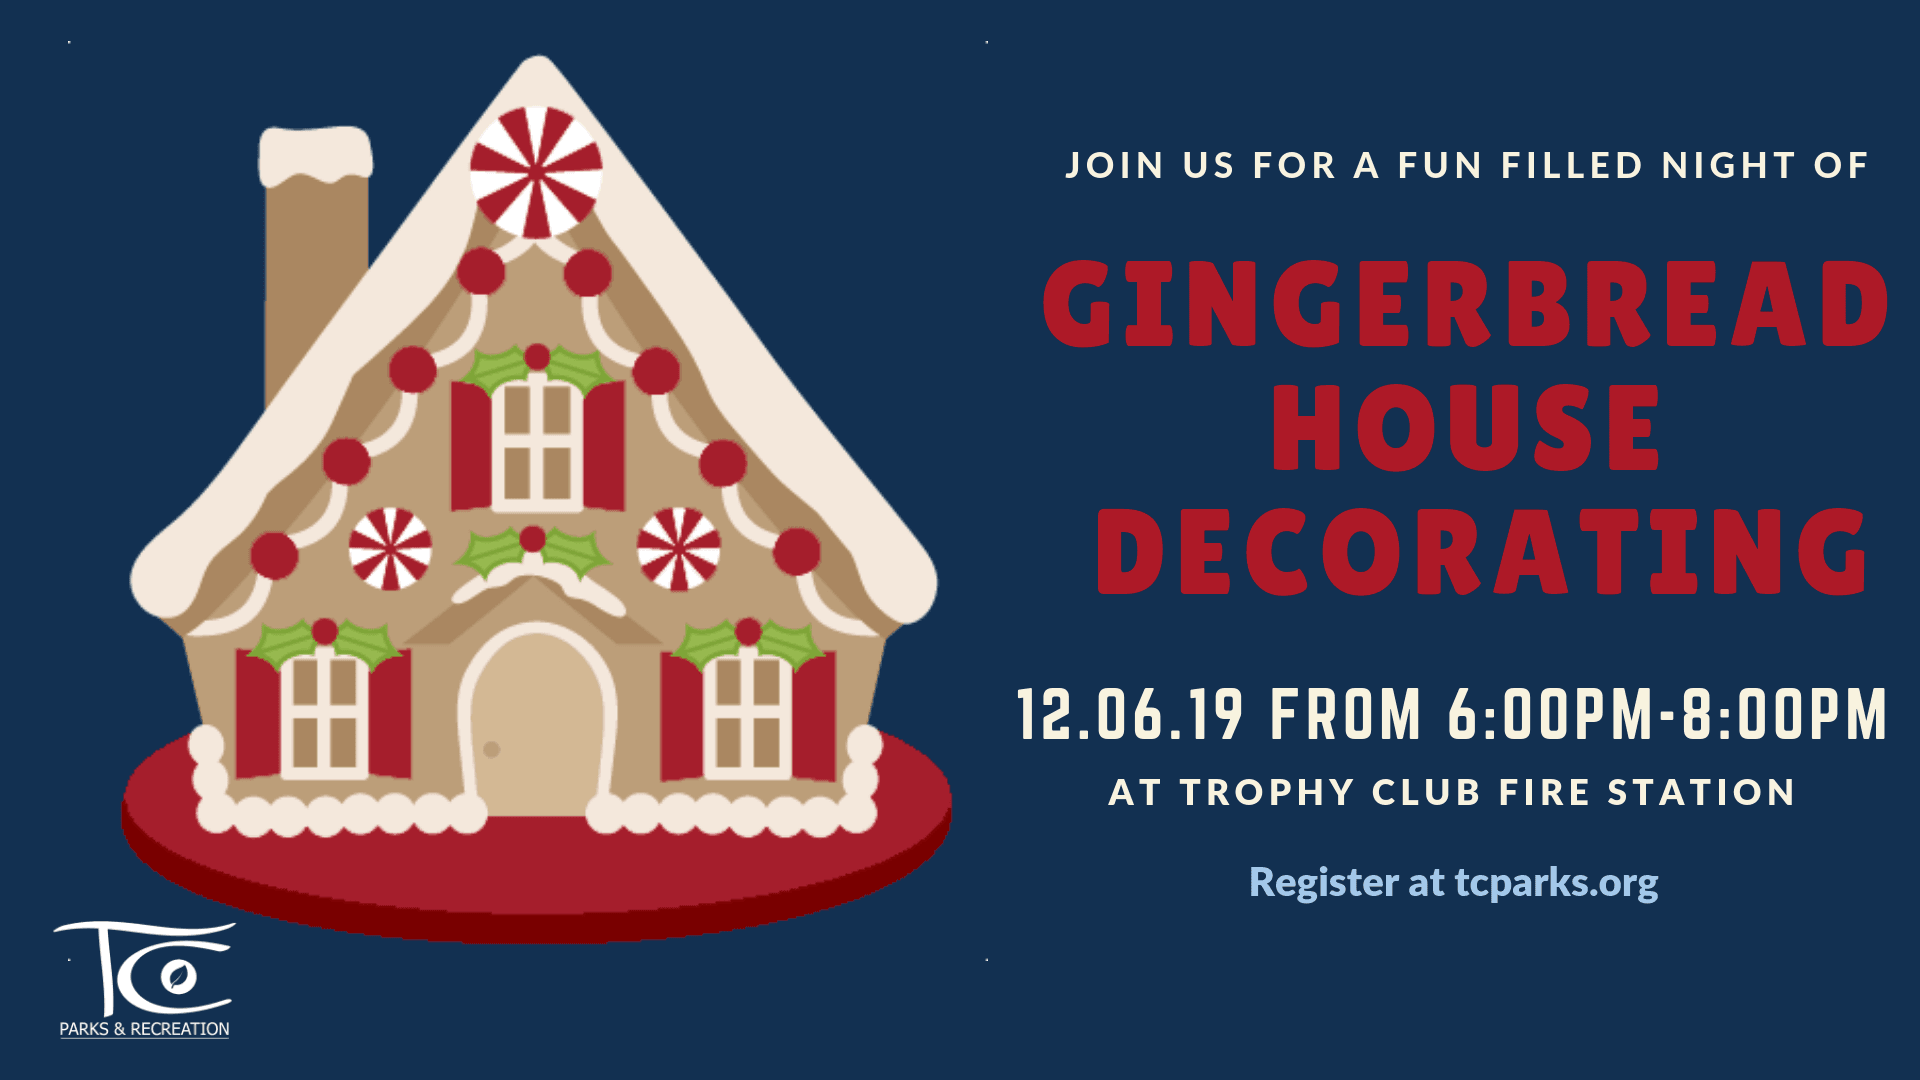 Gingerbread House Decorating Promotional Banner